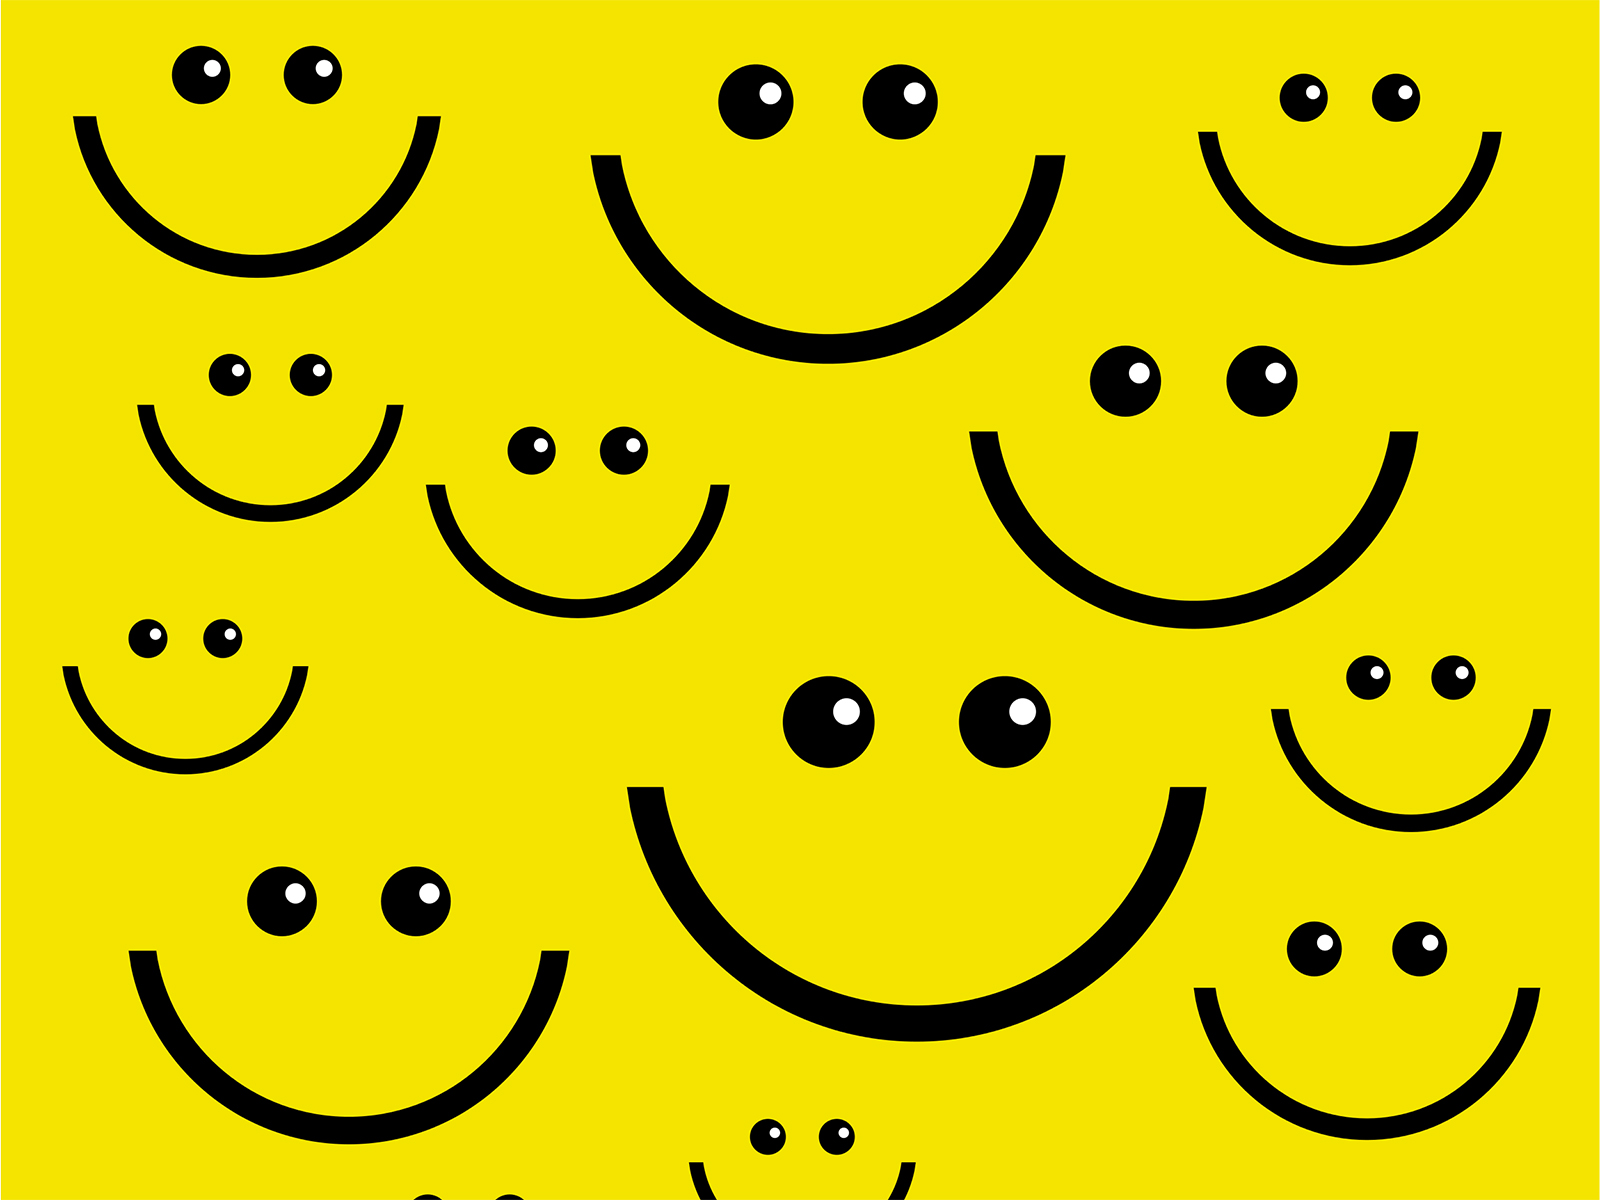 smile face backgrounds black  design  yellow templates microsoft clip art christmas borders microsoft clip art christian easter